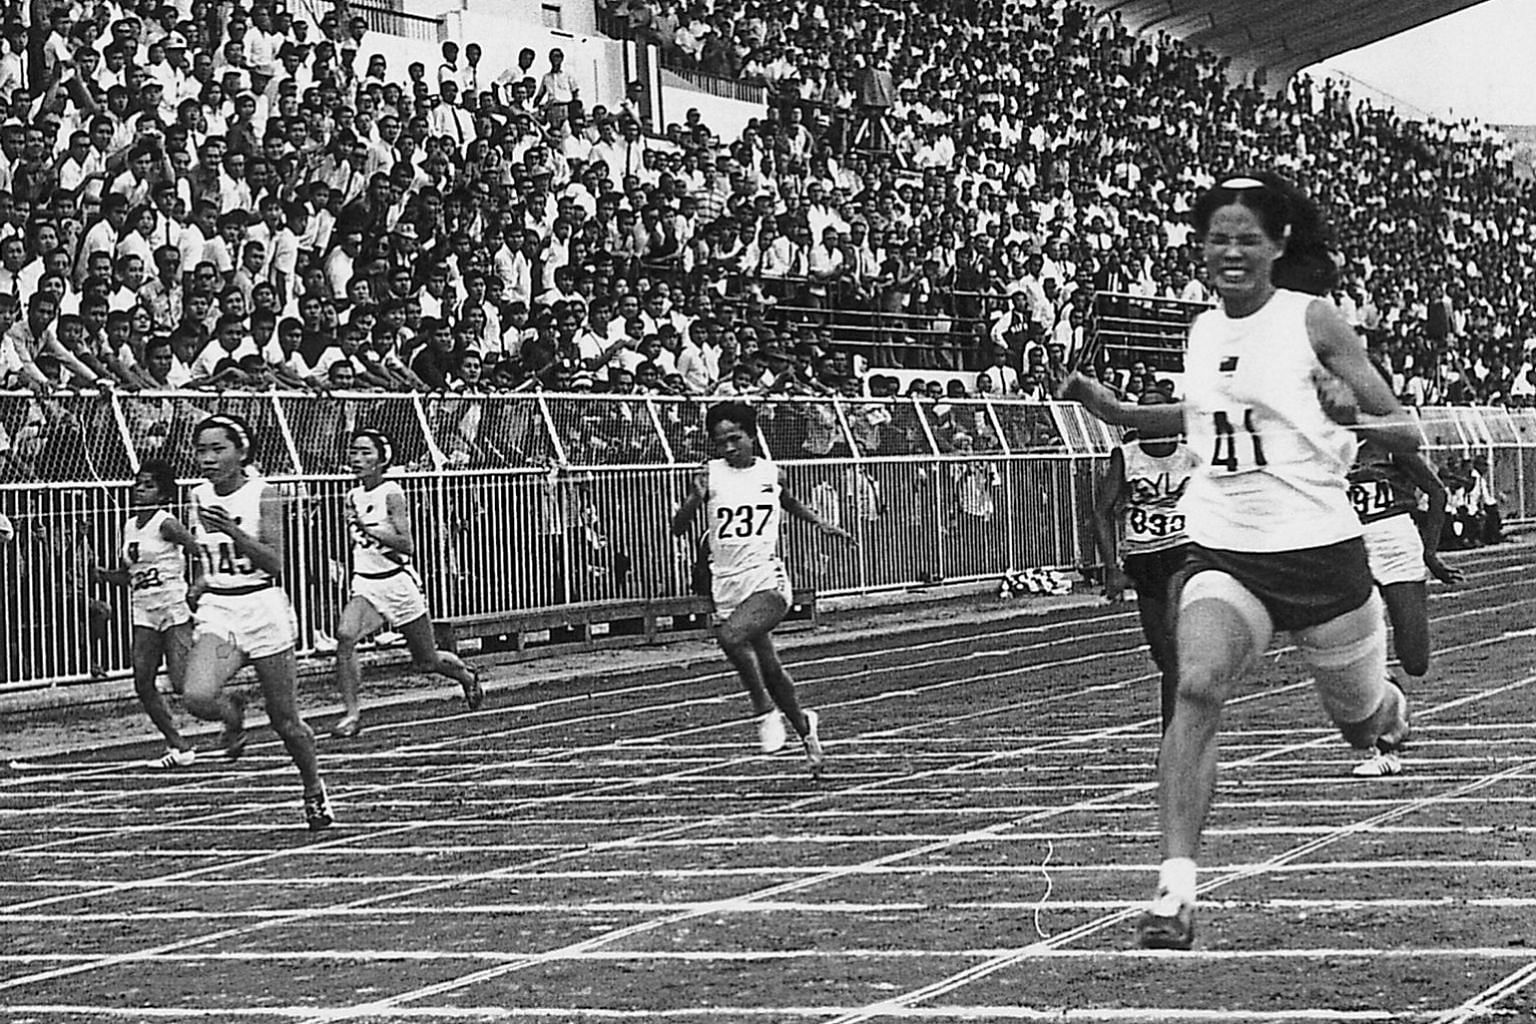 Chi Cheng winning the 100m at the 1970 Asian Games in Bangkok. PHOTO COURTESY OF CHI CHENG